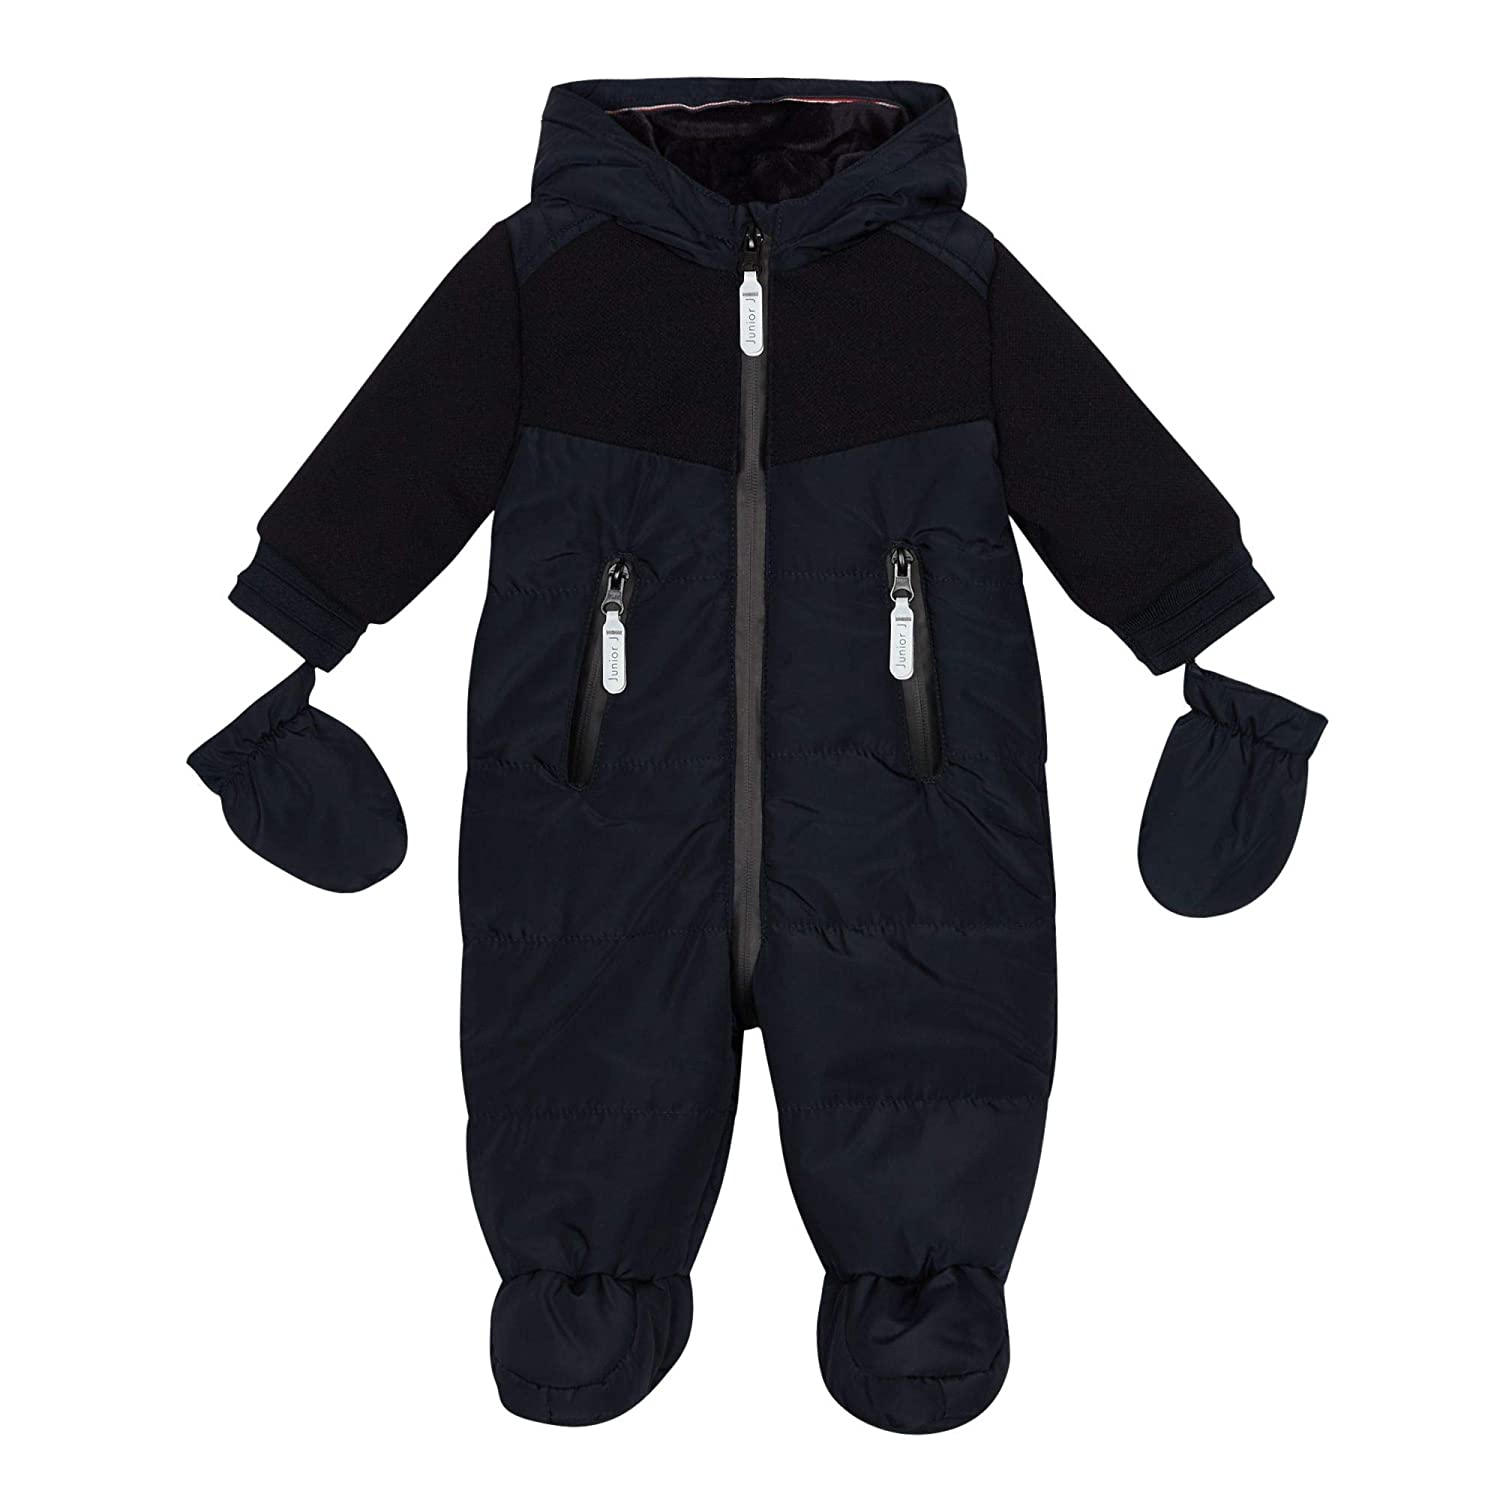 J by Jasper Conran Kids Babies' Navy Snowsuit